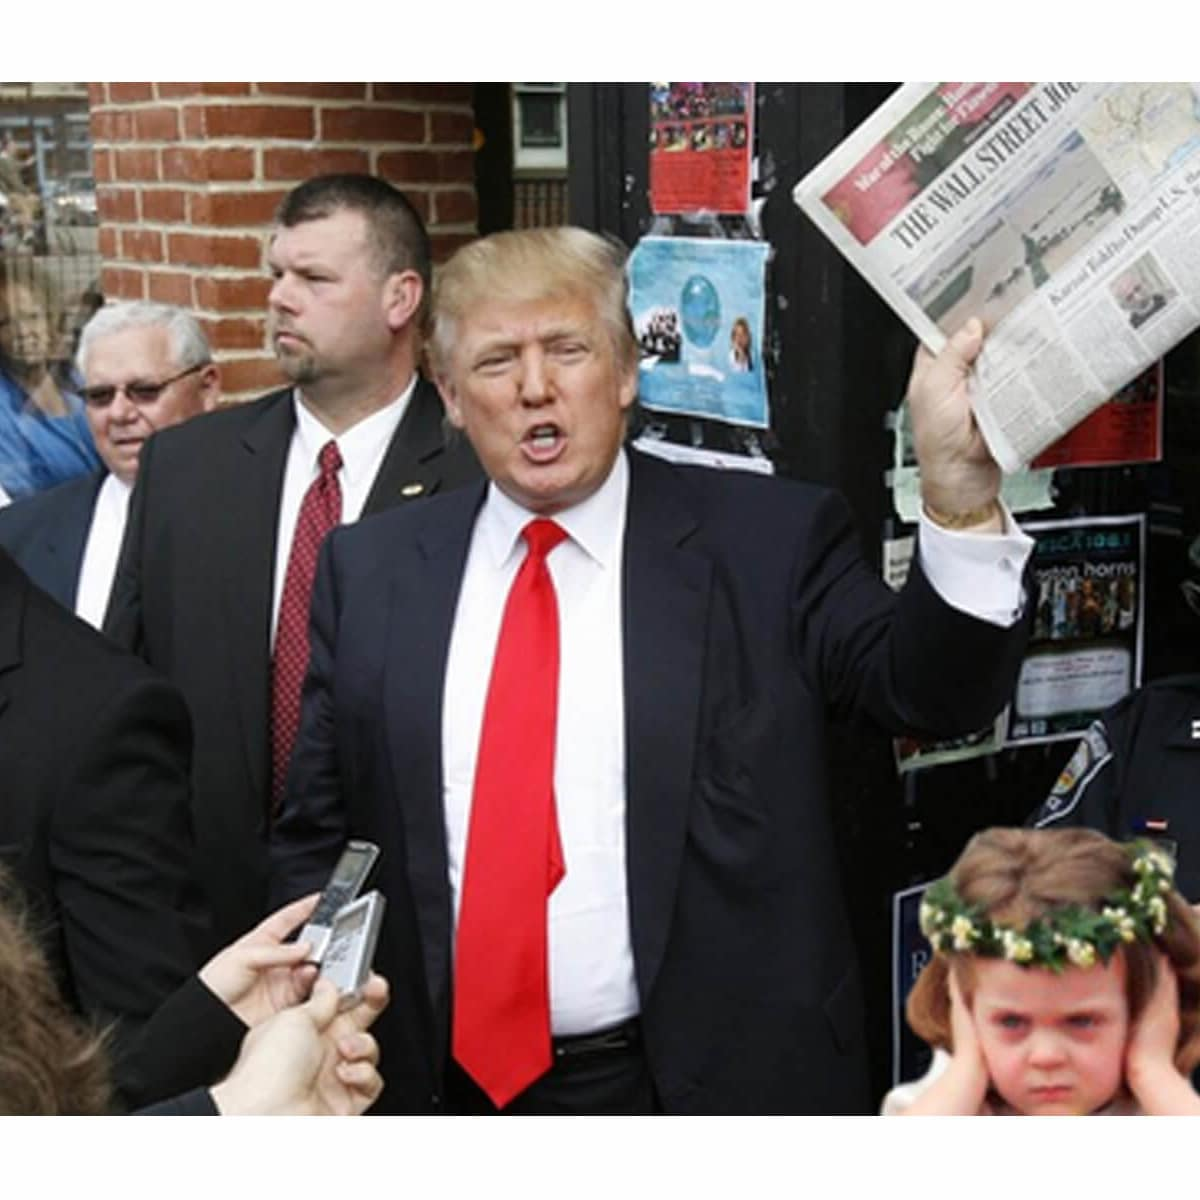 News_Little girl_Donald Trump